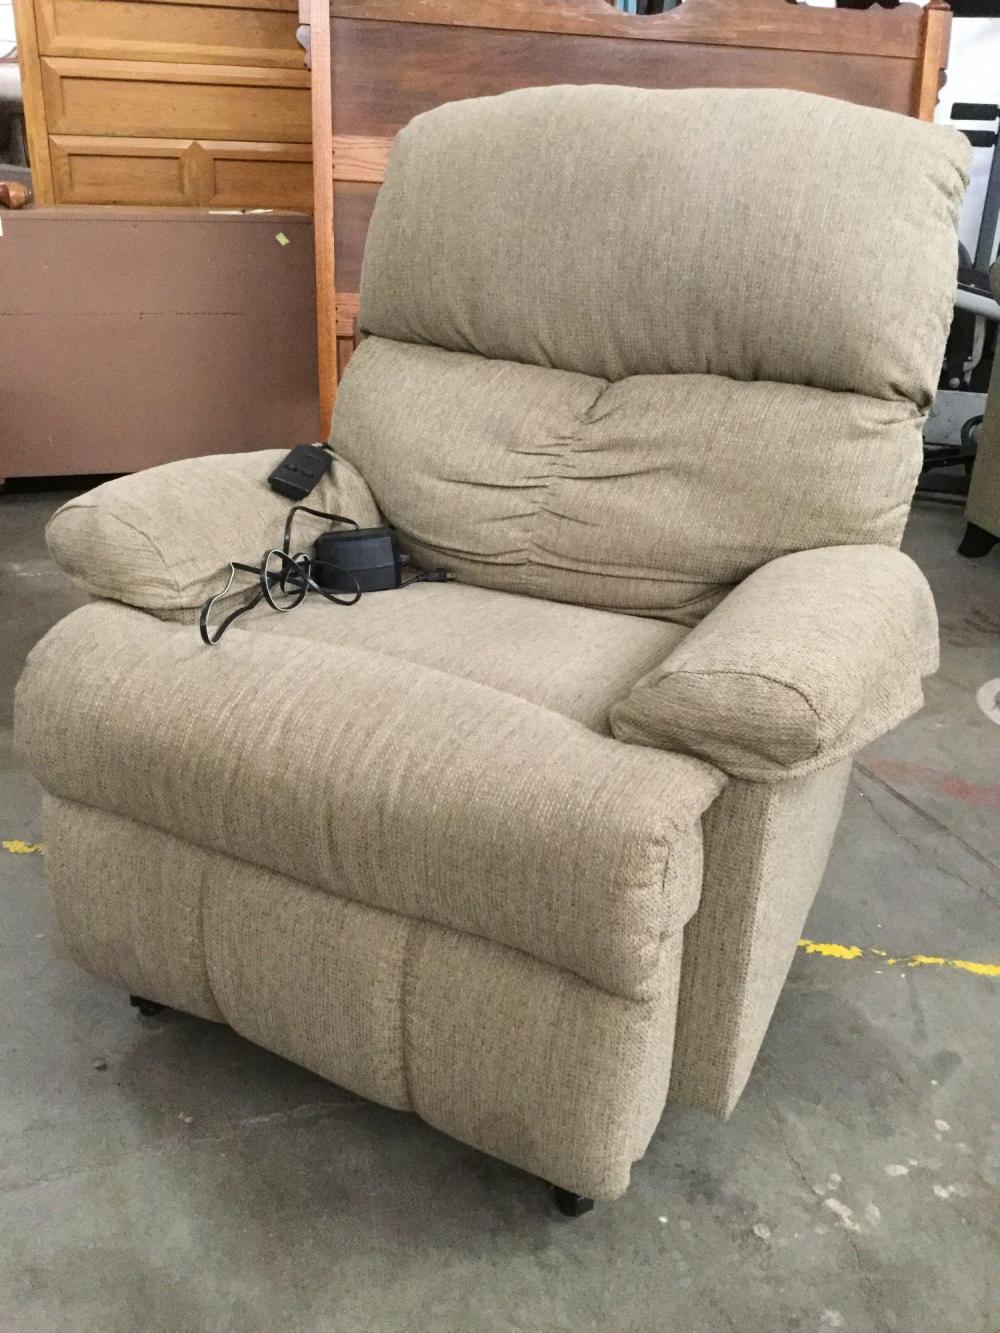 Okin Electric Recliner Lift Chair With Remote Hand Control